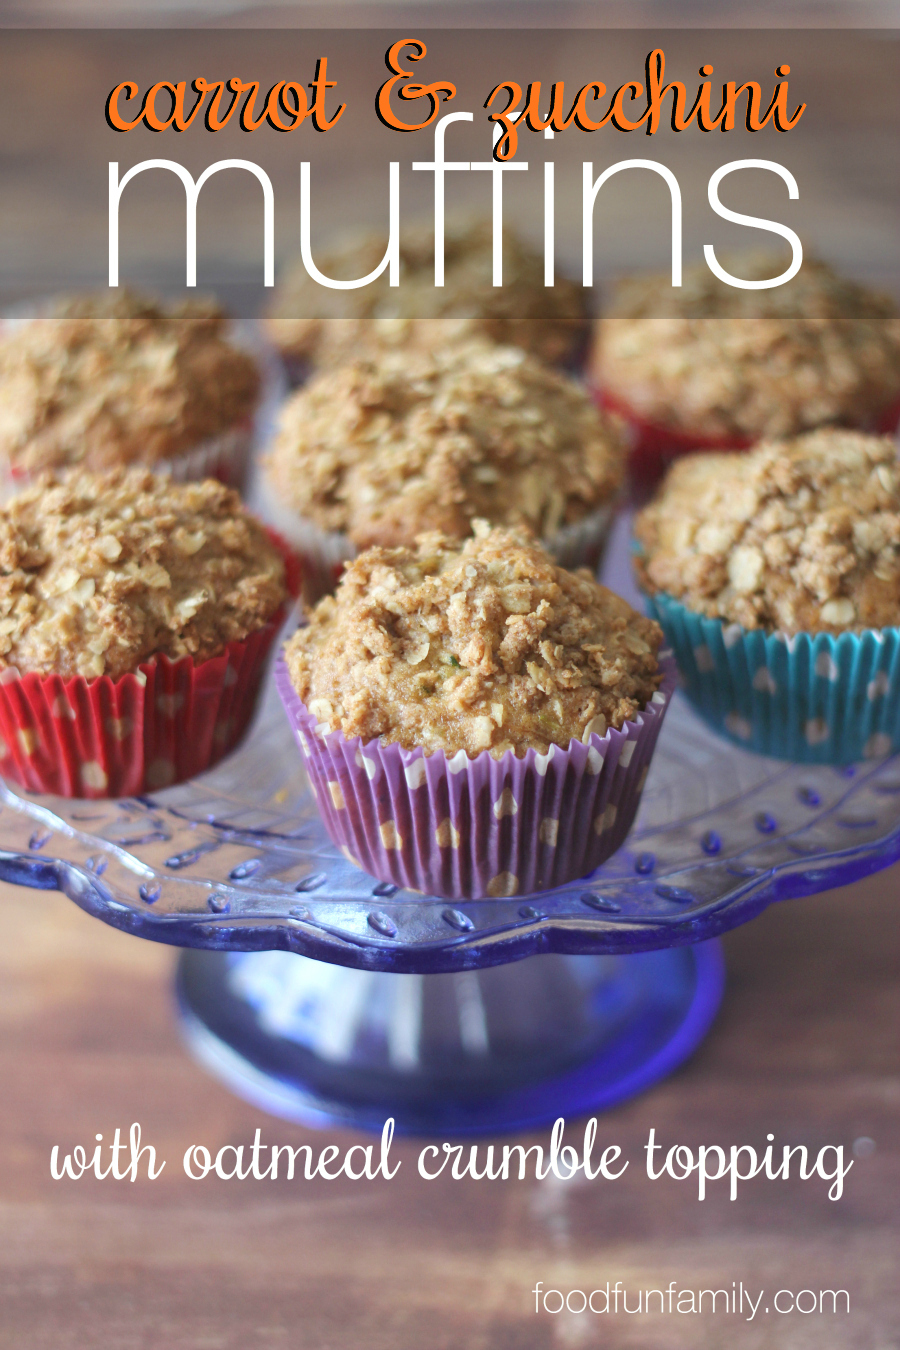 Zucchini bread and carrot cake got together and these delicious muffins are their babies. OK, maybe that didn't really happen, but these carrot and zucchini muffins with oatmeal crumble topping are SO good, you've got to try them!